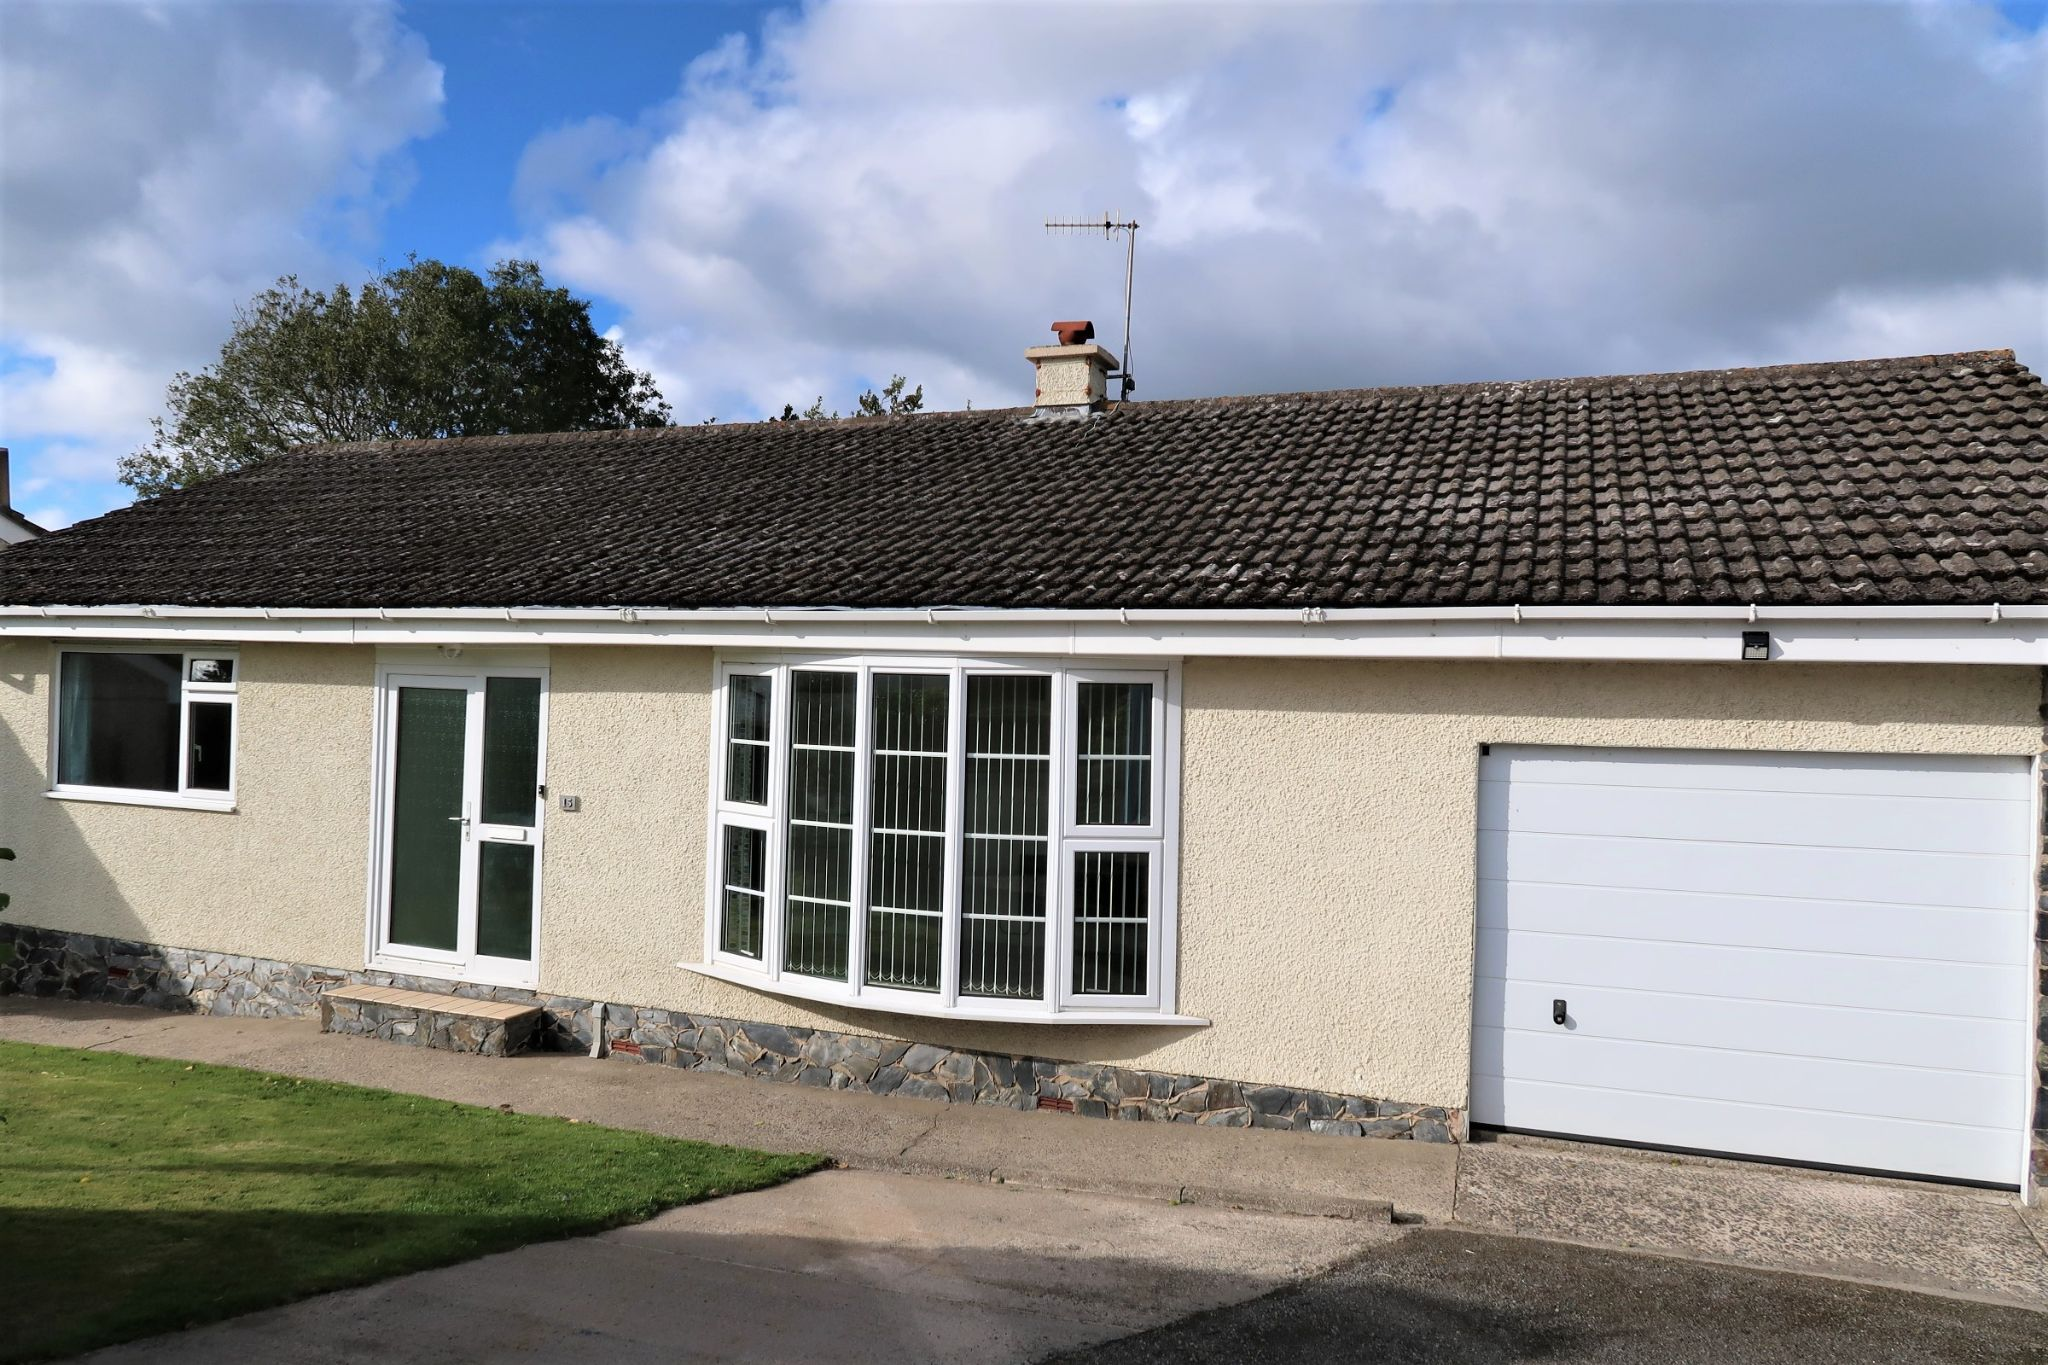 3 bedroom detached bungalow For Sale in Ballabeg - Photograph 1